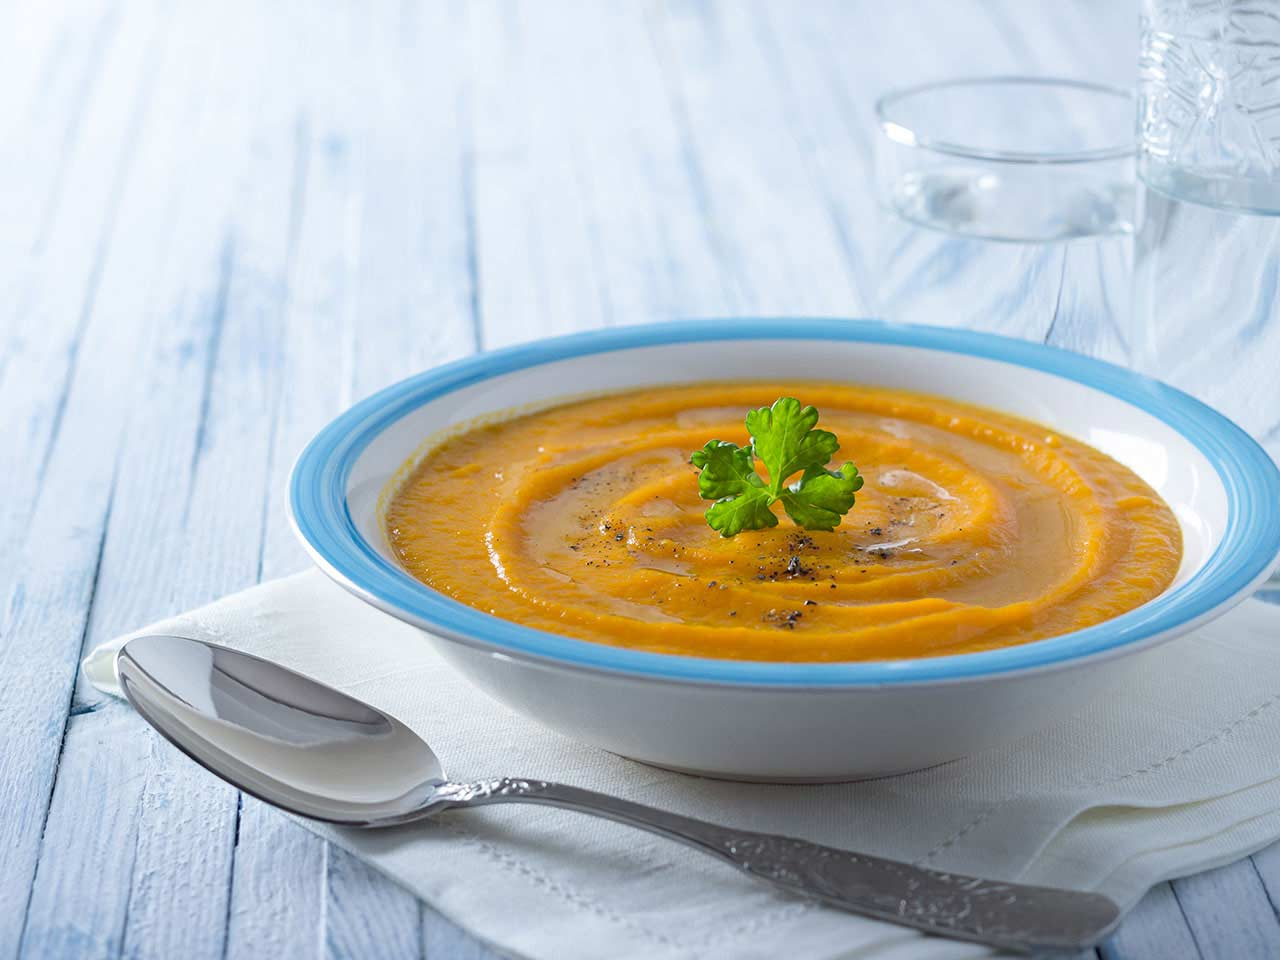 /contentlibrary/saga/publishing/verticals/food/recipes/soup/spicy-carrot-soup-recipe.jpg